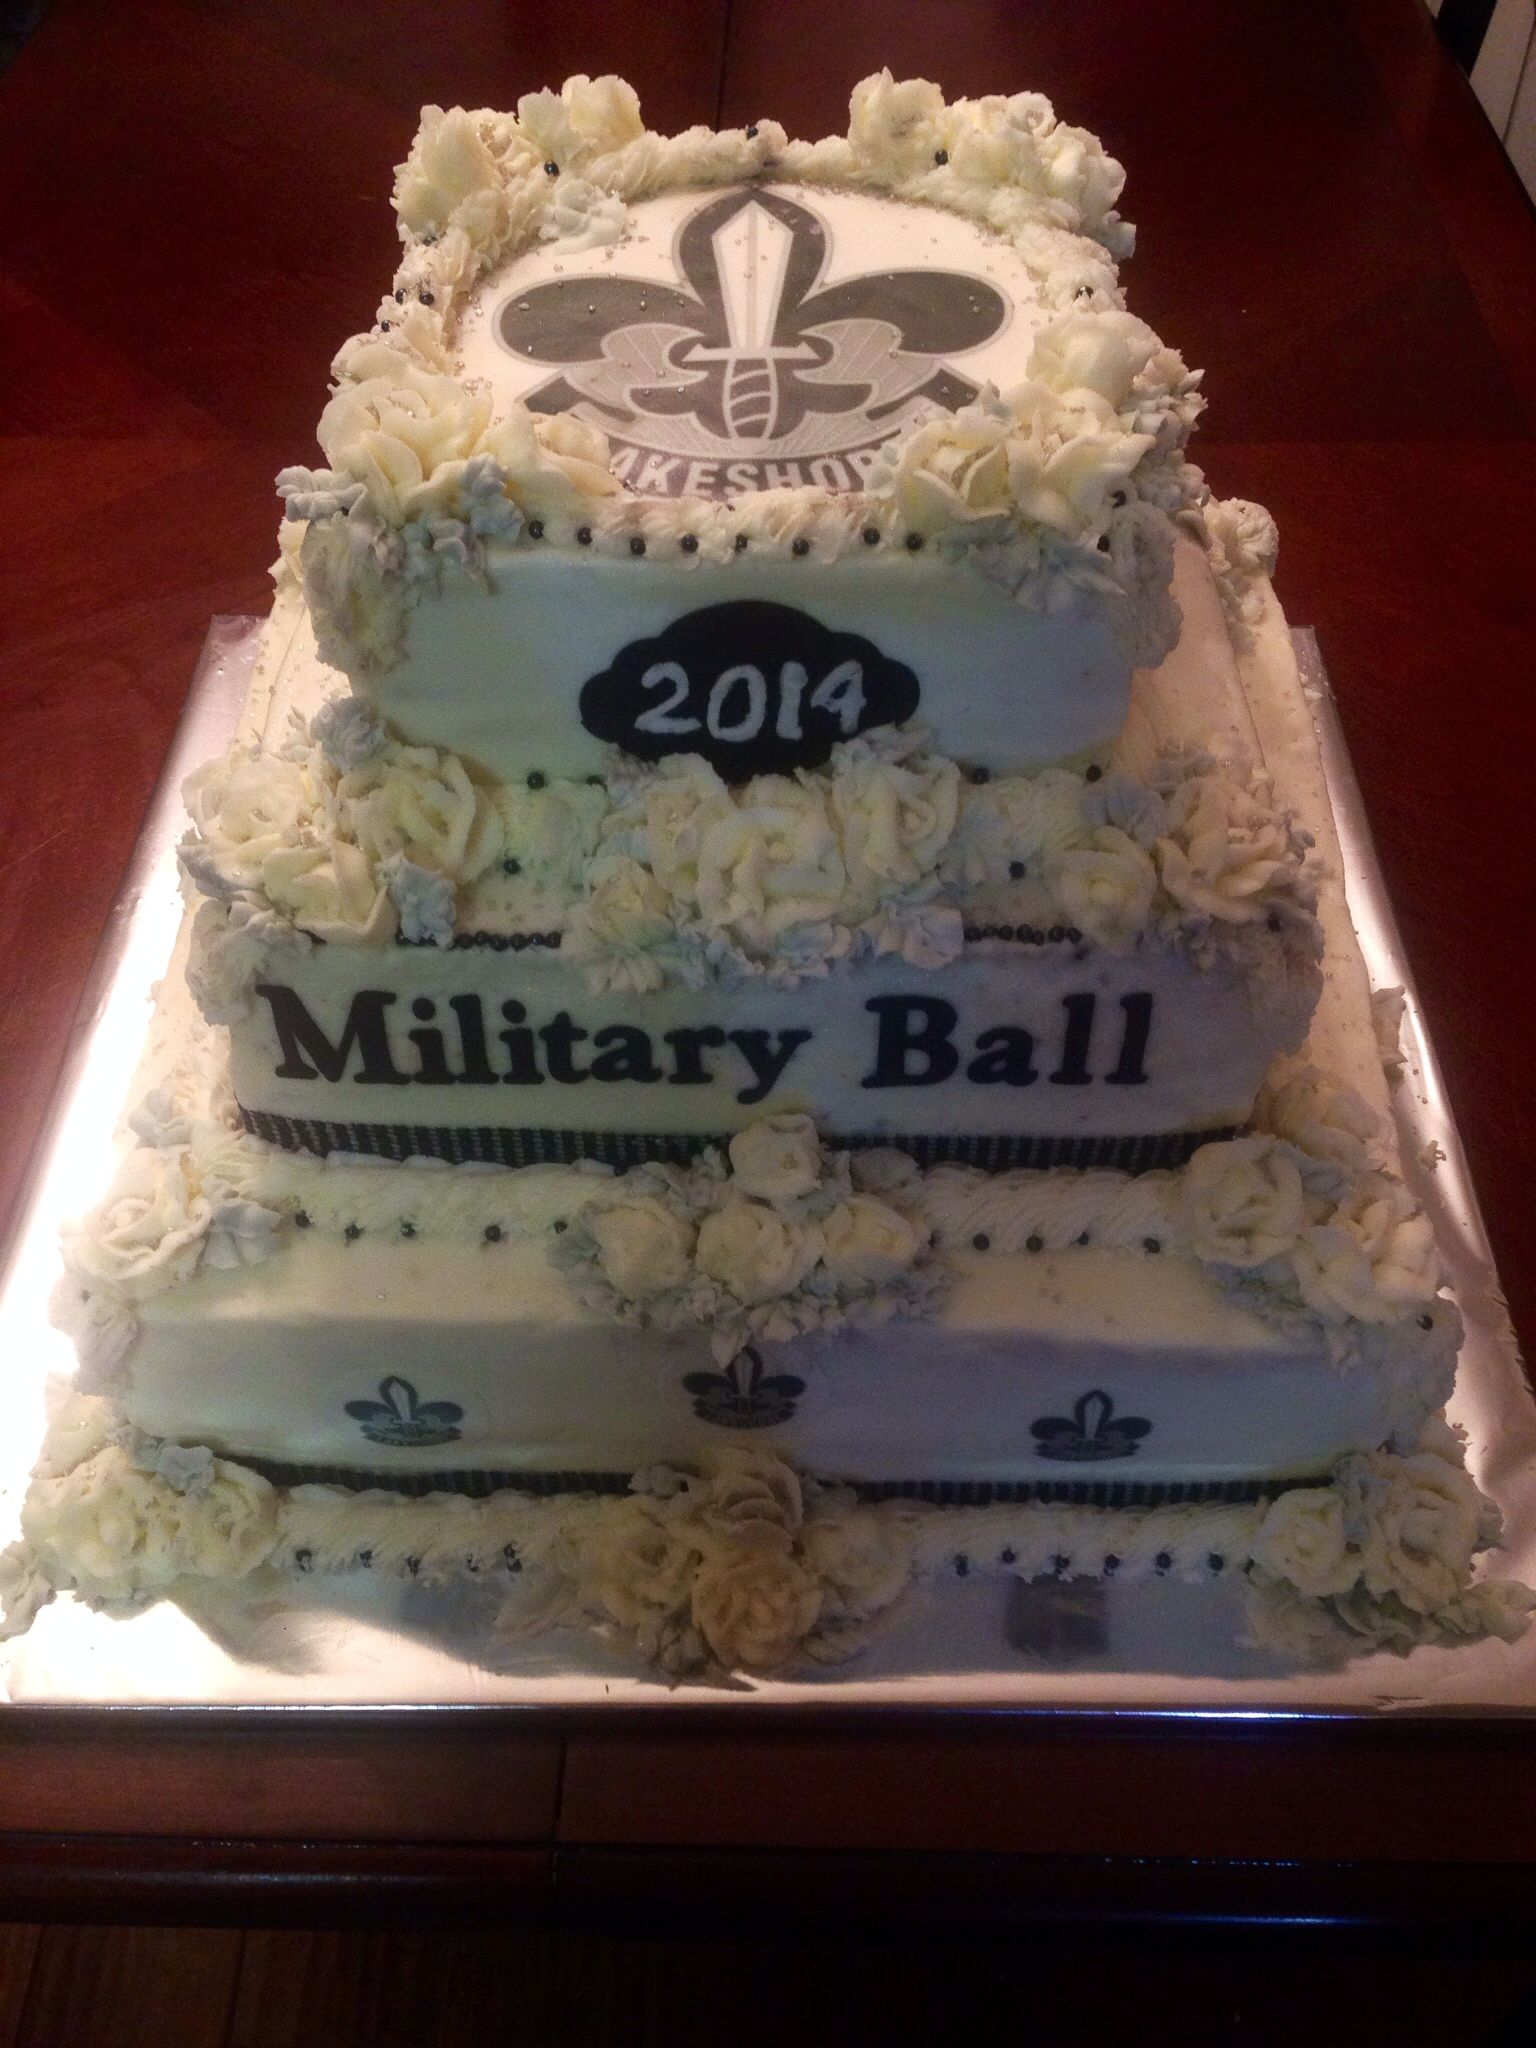 Cake Decorating Balls Jrotc Military Ball  Cake Decorating  Pinterest  Military Ball